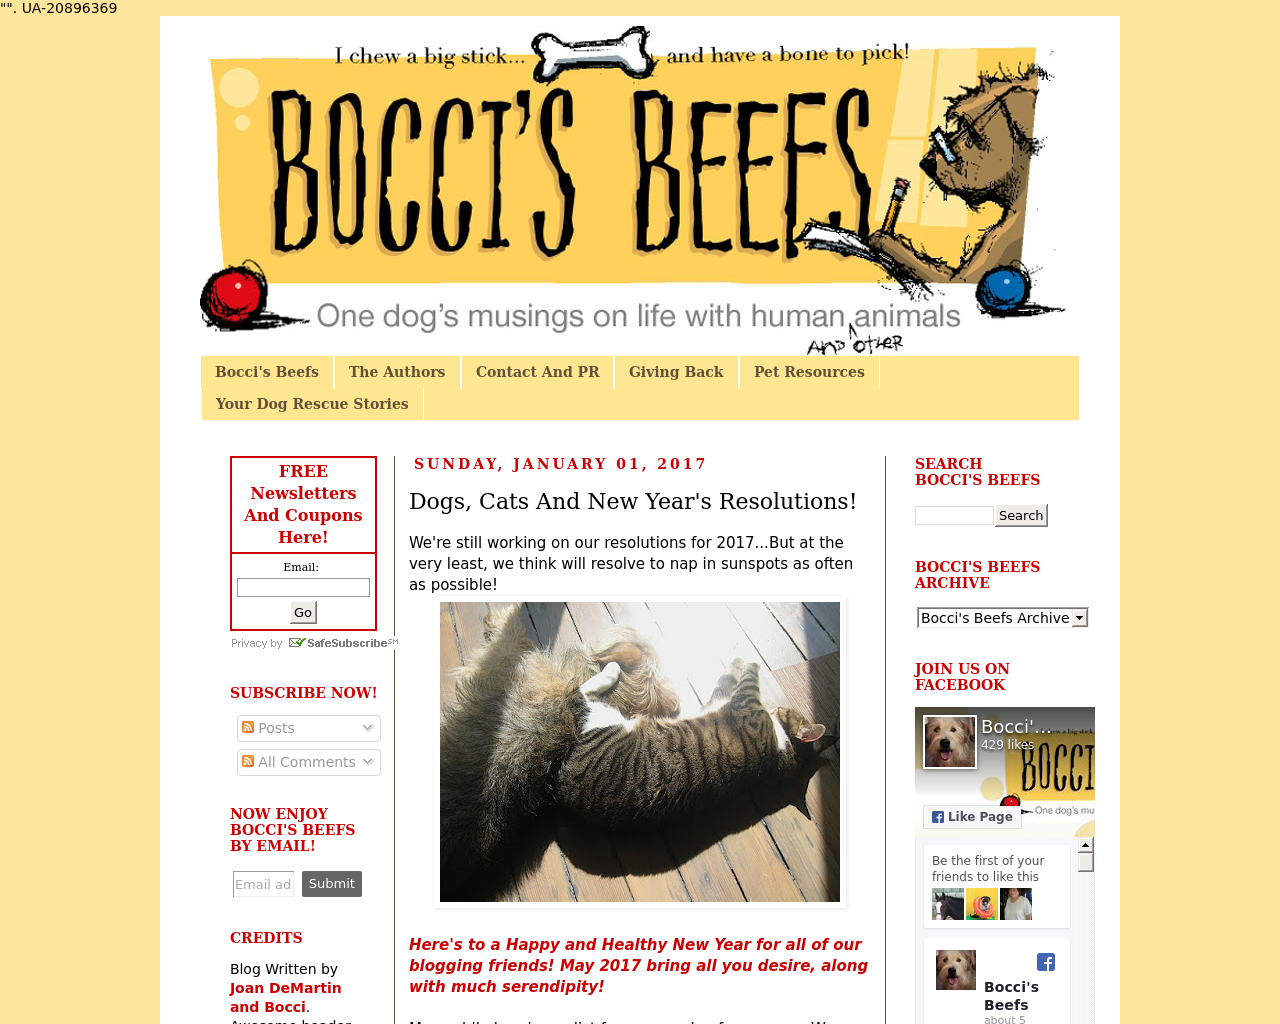 Bocci's-Beefs-Advertising-Reviews-Pricing